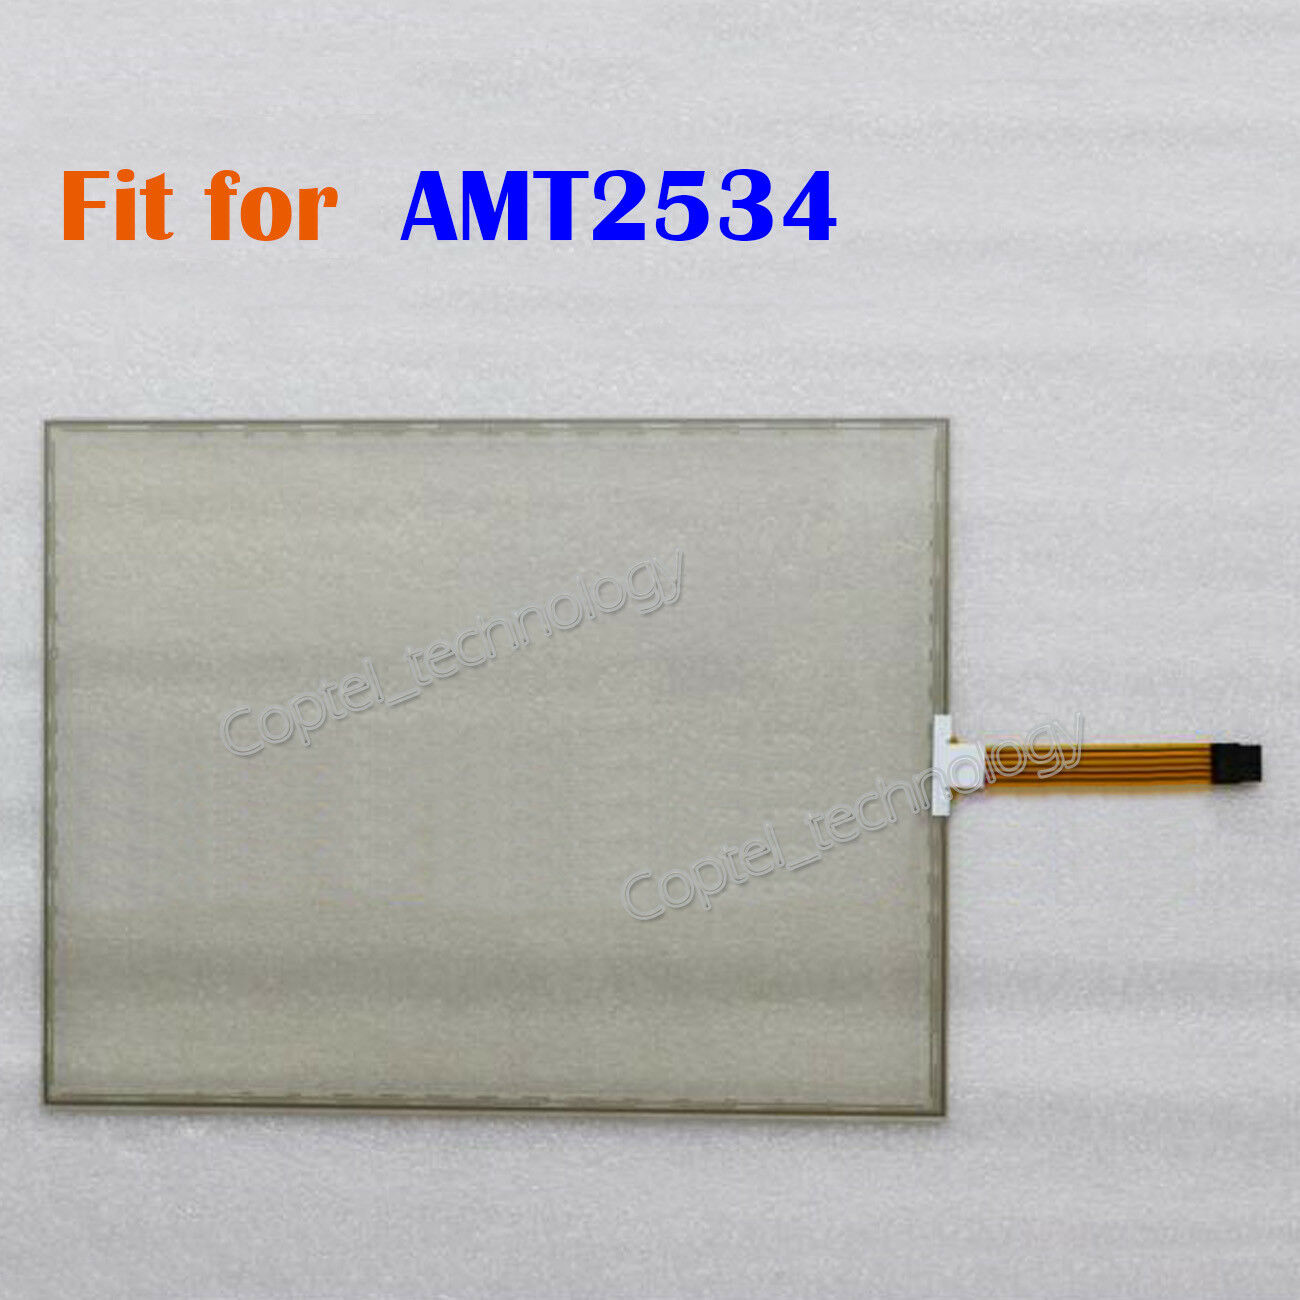 New Touch Screen Glass for AMT2534  AMT 2534  AMT-2534  180 days Warranty